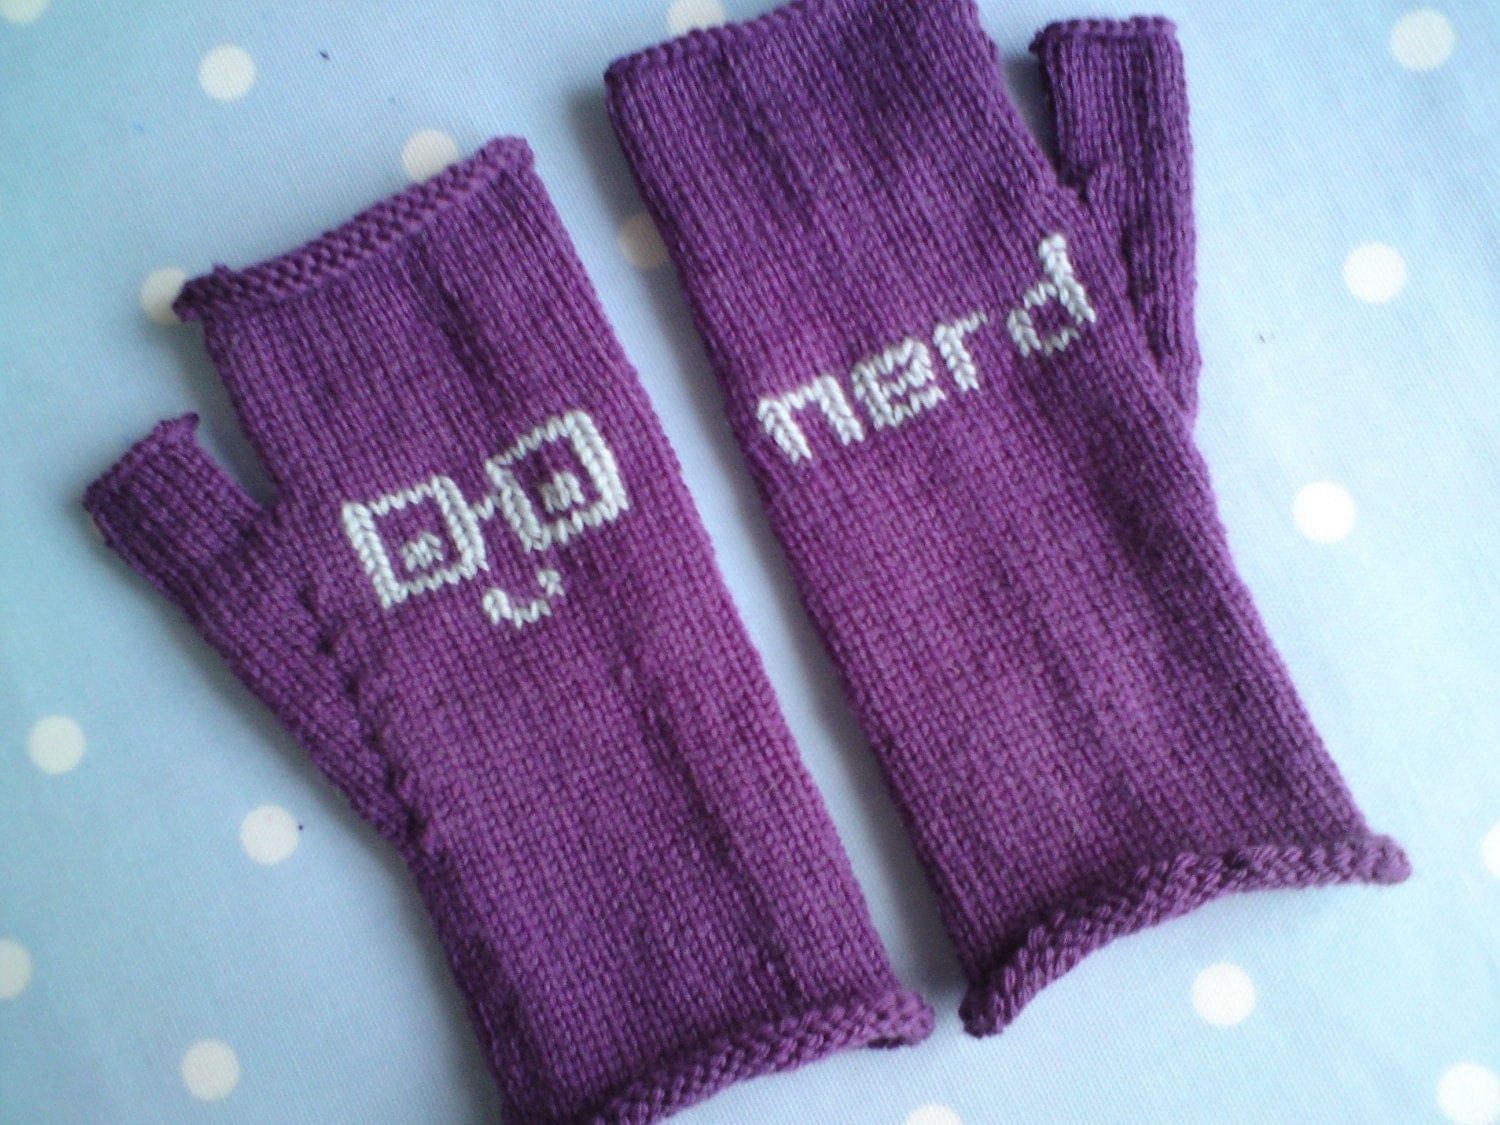 Purple Fingerless Mittens / Gloves - Nerd Emoticons for a little Geek Chic